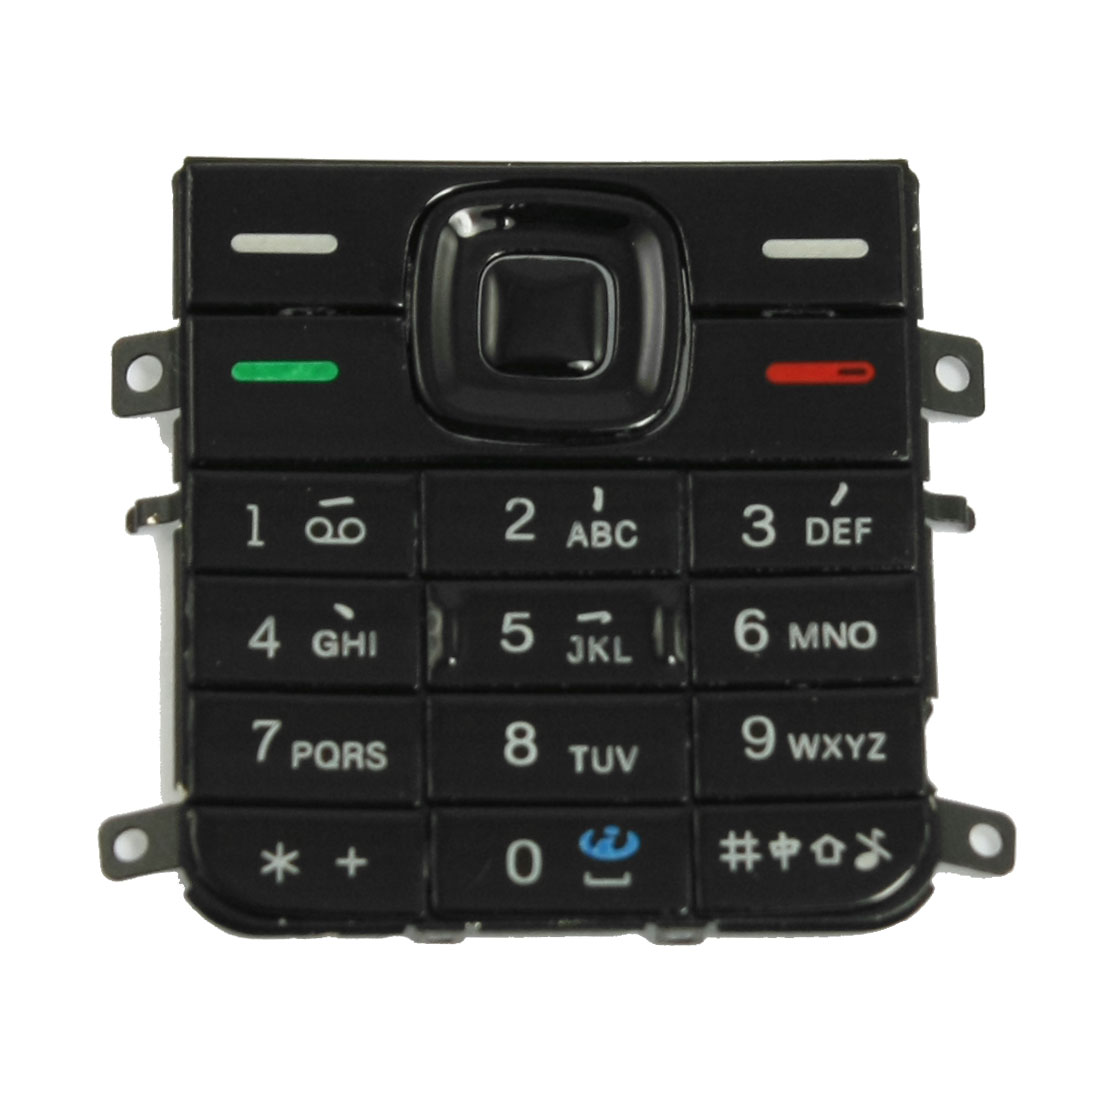 Plastic Replacement Keypad Keyboard for Nokia 5130 Blk